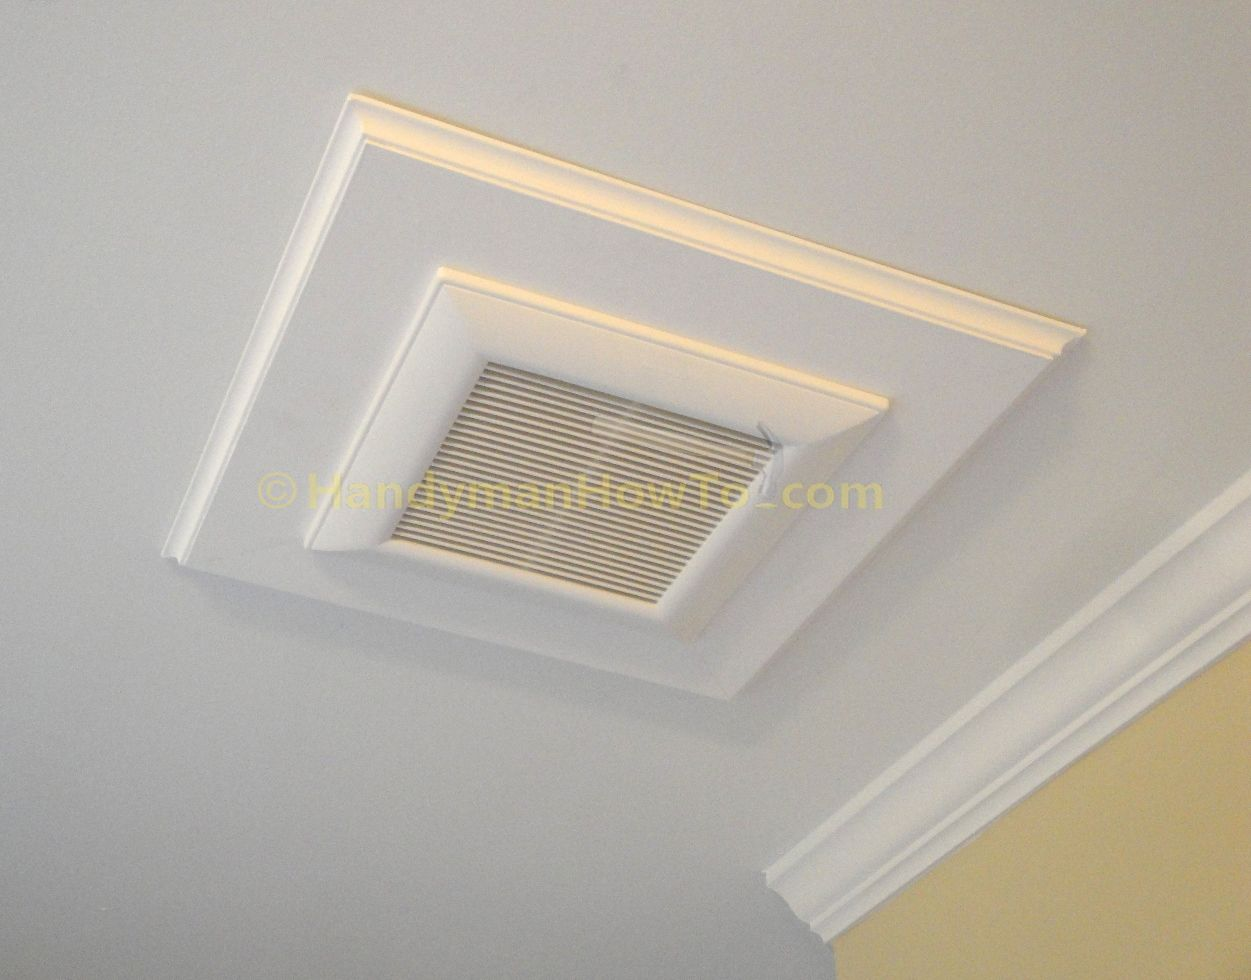 Bathroom Vent Fan Decorative Wood Trim To Conceal A Gap In The Drywall In Attic Bathroom With Images Bathroom Vent Fan